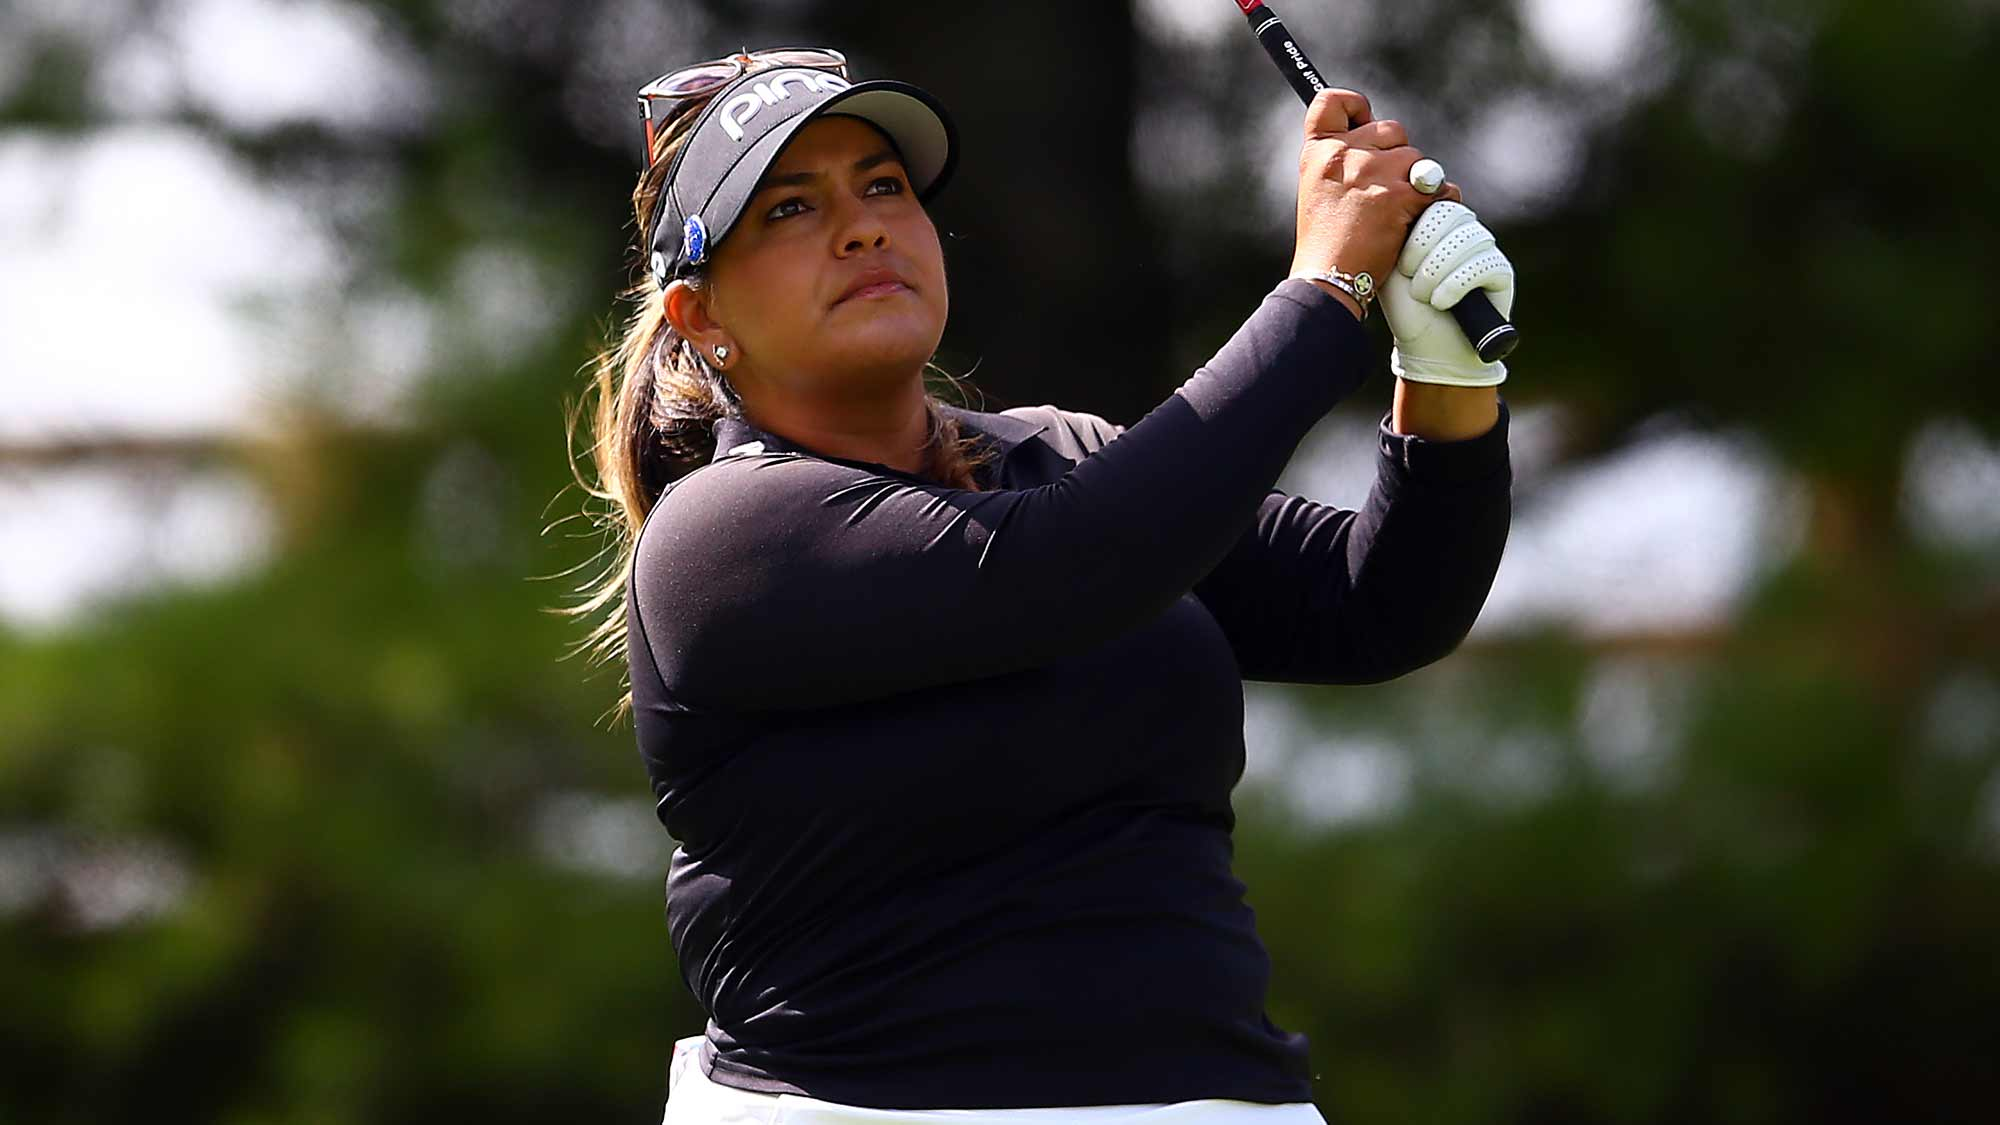 Lizette Salas of the United States hits her tee shot on the 2nd hole during the final round of the CP Women's Open at Magna Golf Club on August 25, 2019 in Aurora, Canada